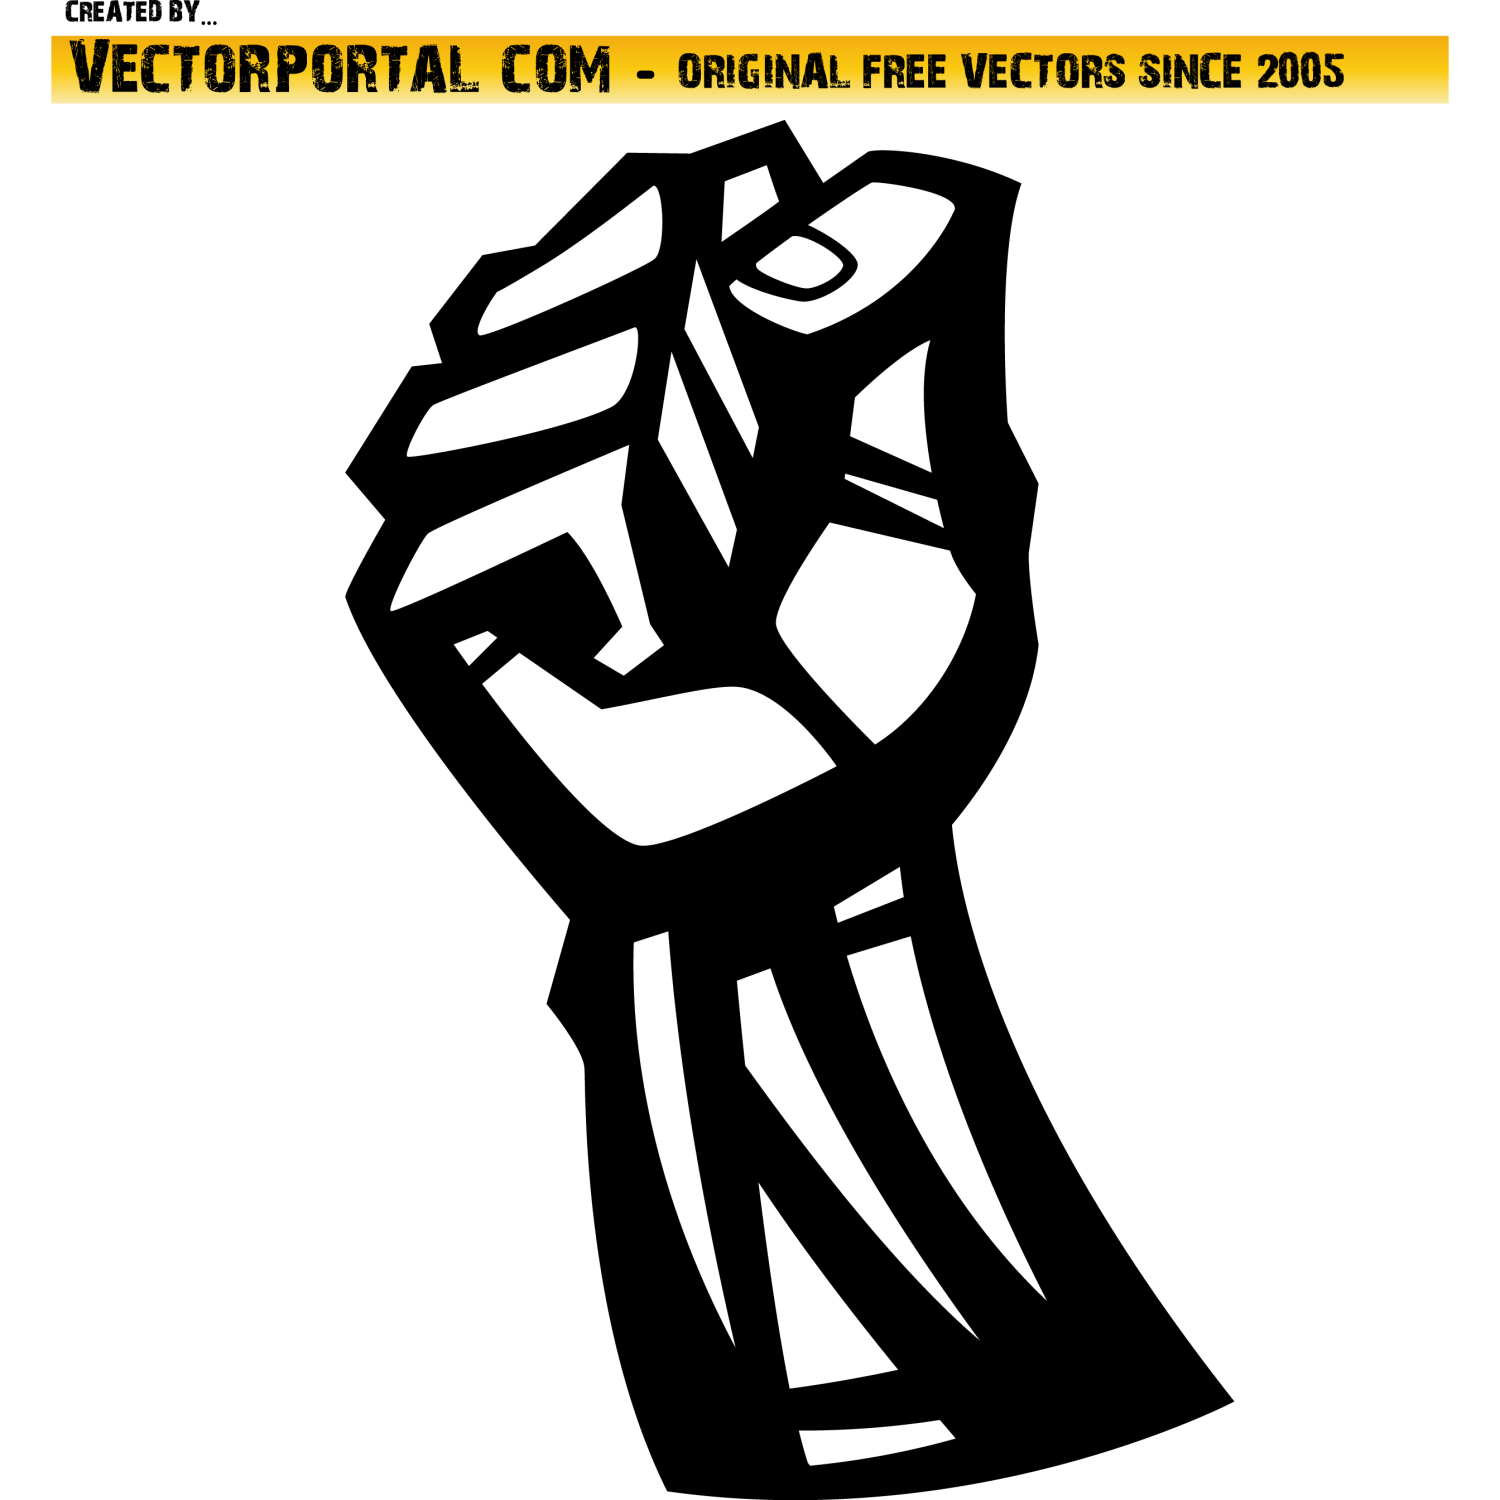 Fist - protest symbol vector